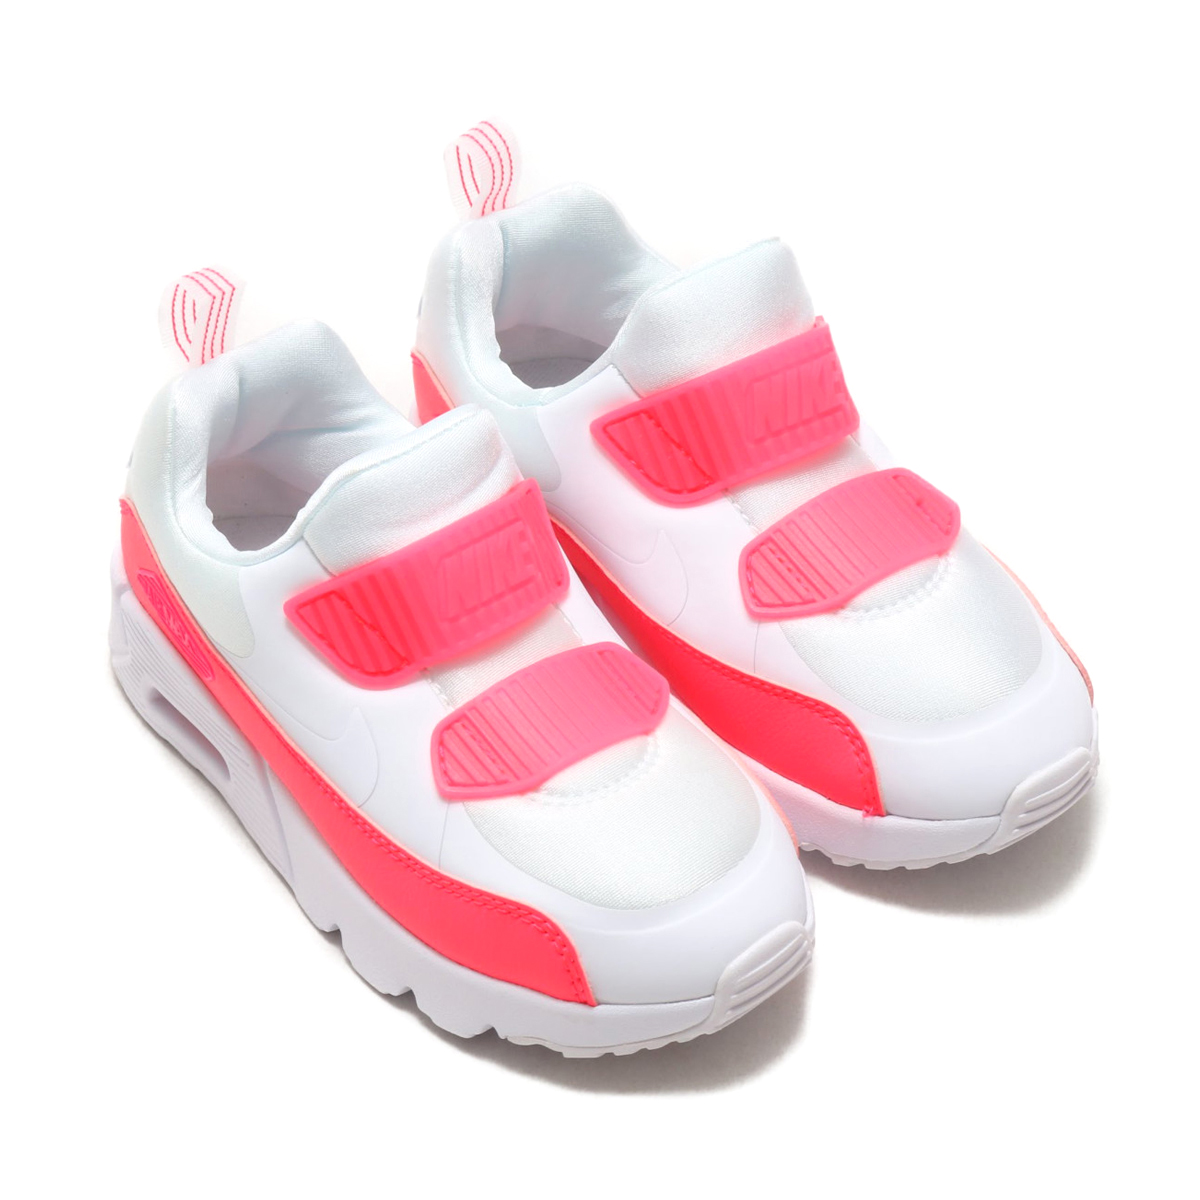 6f94faed2369 NIKE AIR MAX TINY 90 SE (PS) (Kie Ney AMAX Thailand knee 90 SE PS) WHITE  WHITE-RACER PINK-RUSH PINK 18SU-S